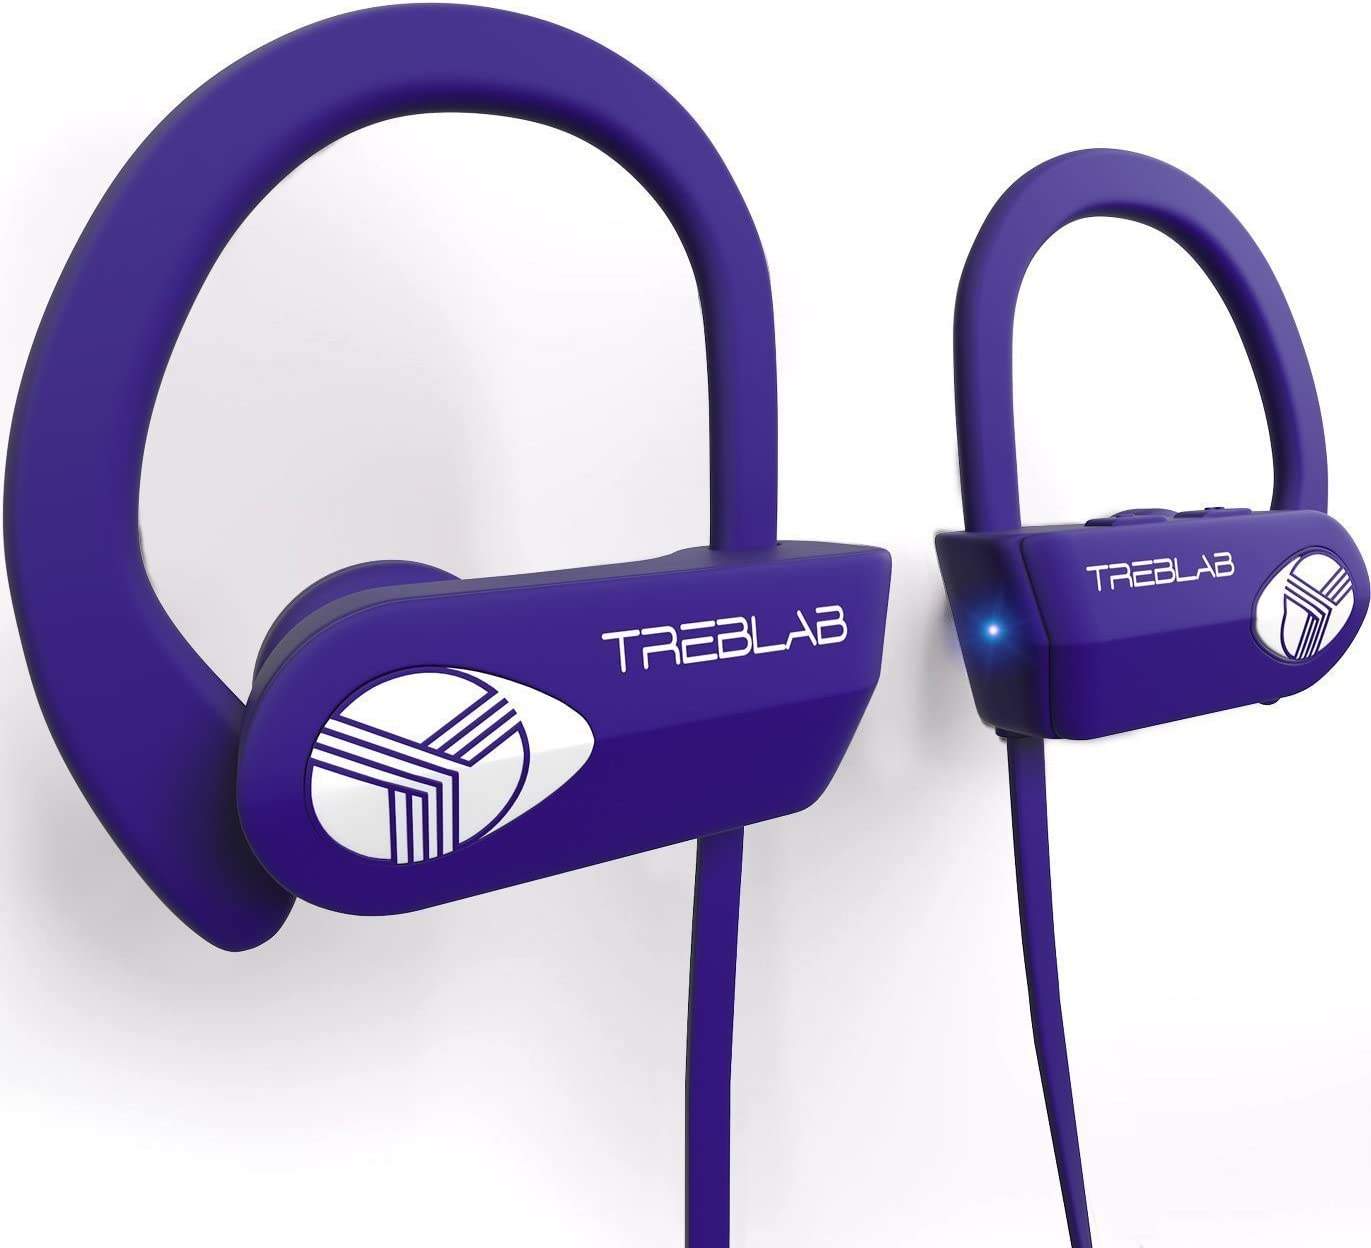 TREBLAB XR500 Bluetooth Headphones, Wireless Earbuds for Sports. IPX7 Water Resistant, Sweatproof. Noise Cancelling Earphones w Mic. Purple Renewed